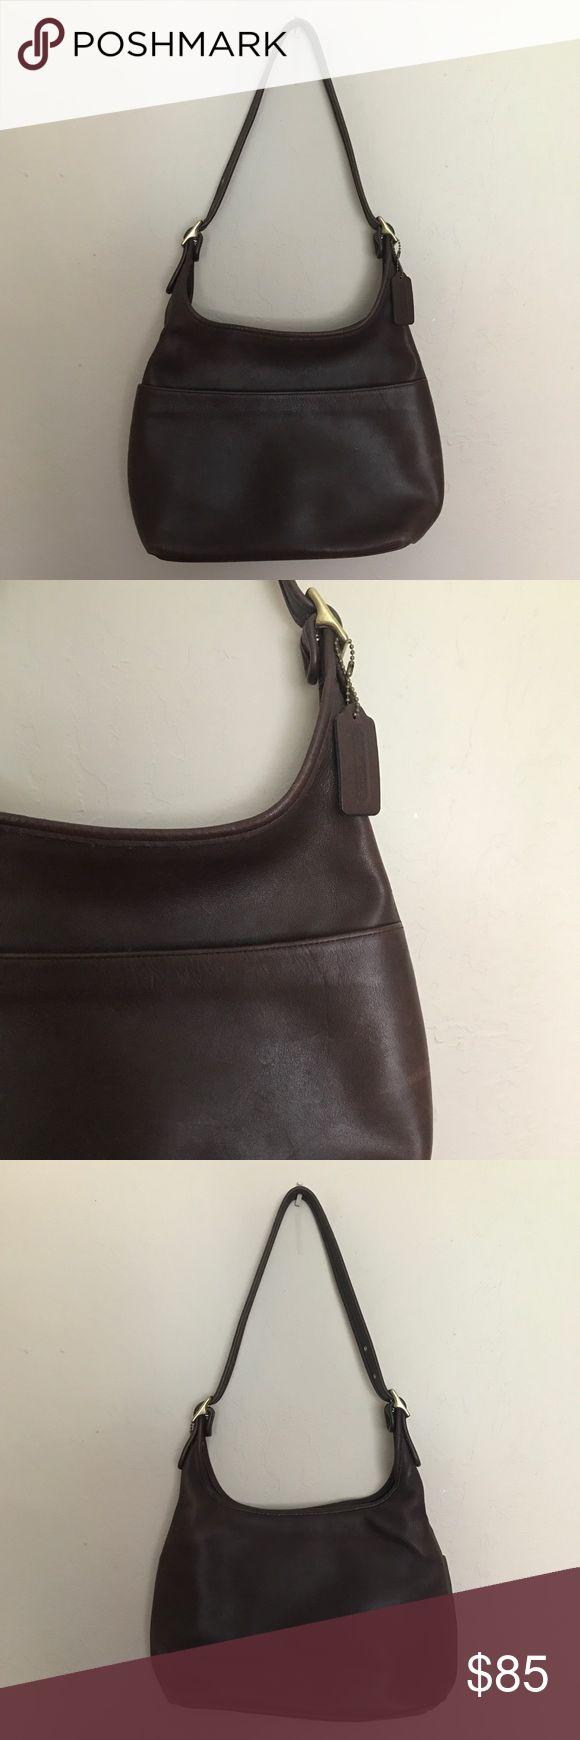 "Vintage Coach Legacy Hobo Bag Vintage Coach Legacy Hobo Shoulder Bag - Coach - Brown - 100% Leather - Serial Number 9058 - Excellent Condition - Hang Tag Included - Unlined Inside - Brass Hardware - Dimensions: 9"" H x 11"" L x 5"" D - Strap Drop: 15"" * NO TRADES Coach Bags Hobos"